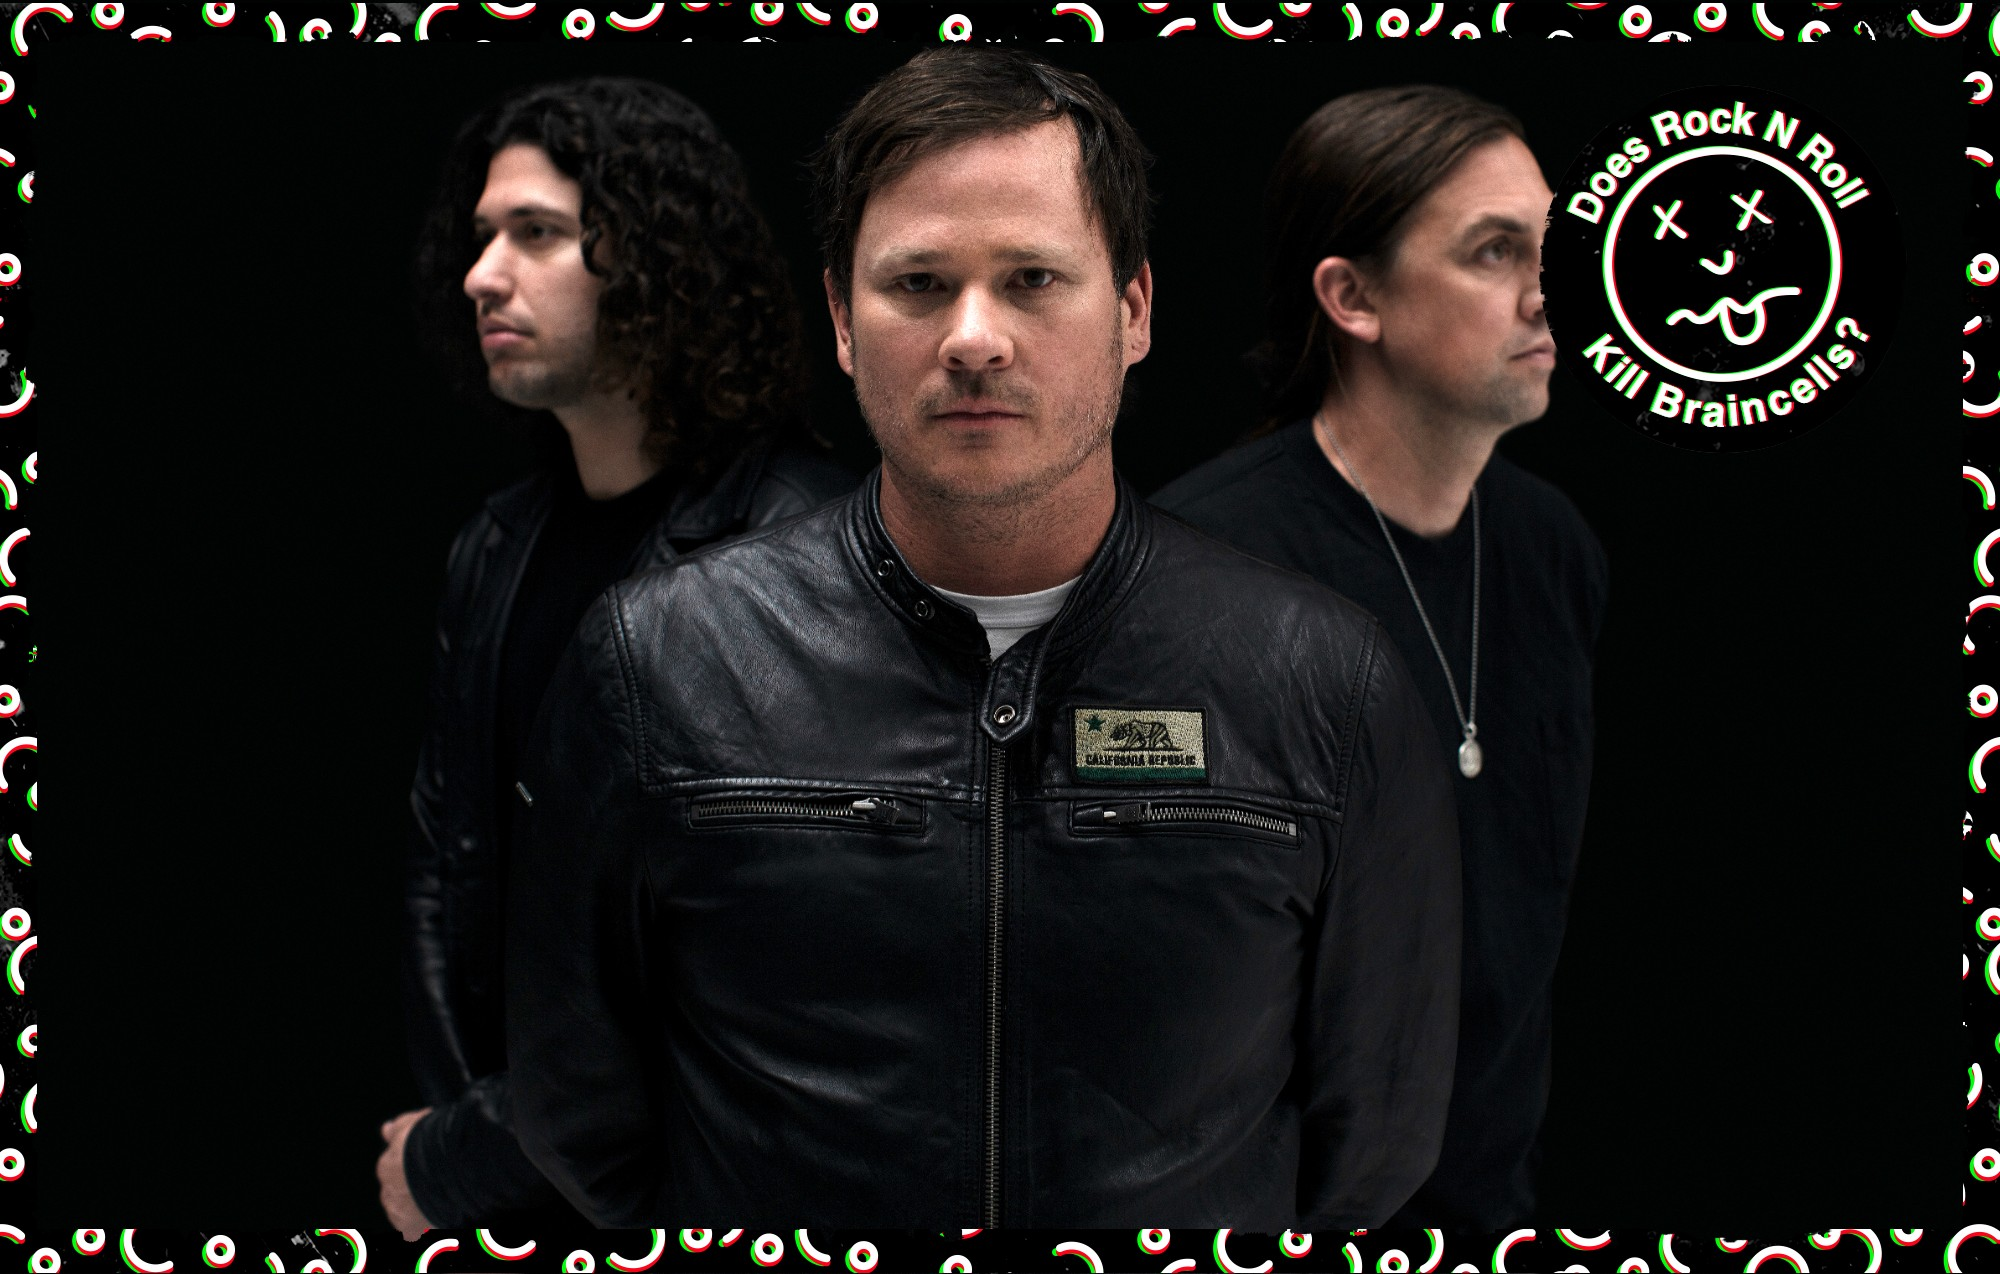 Does Rock 'N' Roll Kill Braincells?! – Tom DeLonge, Angels & Airwaves - NME interview